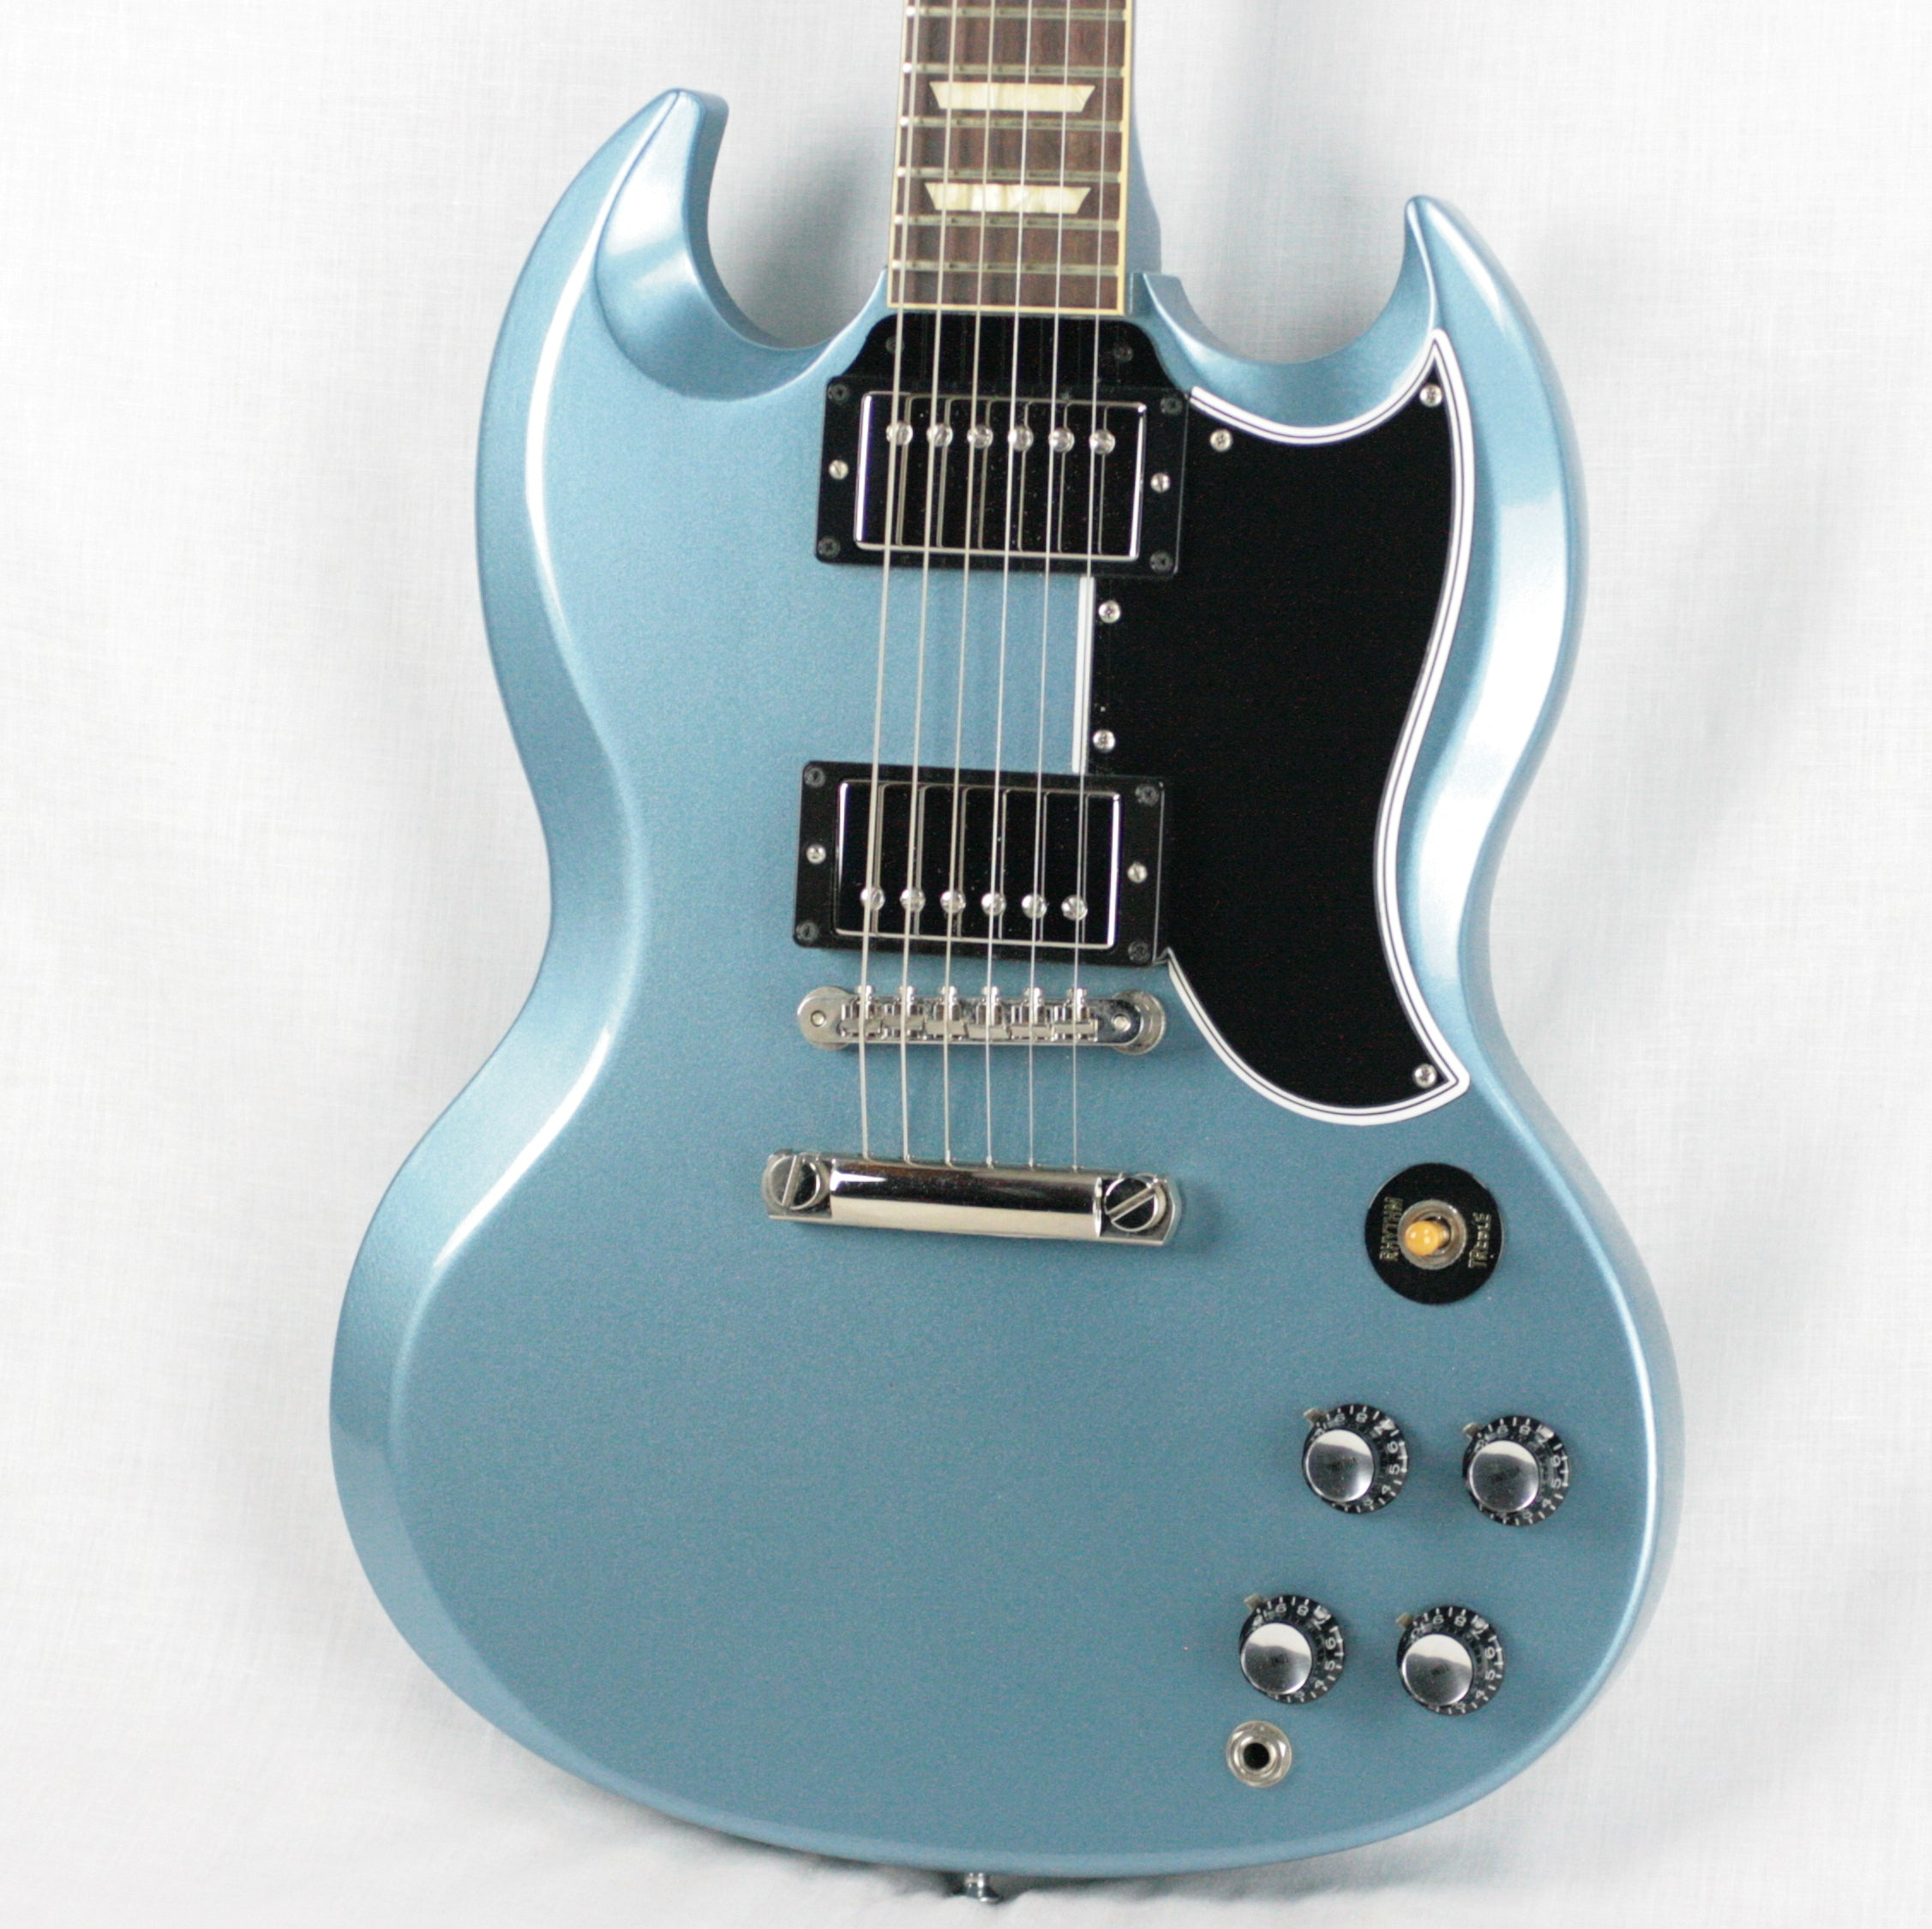 2014 Gibson Custom Shop Historic '61 Les Paul SG Standard Pelham Blue Reissue 1961